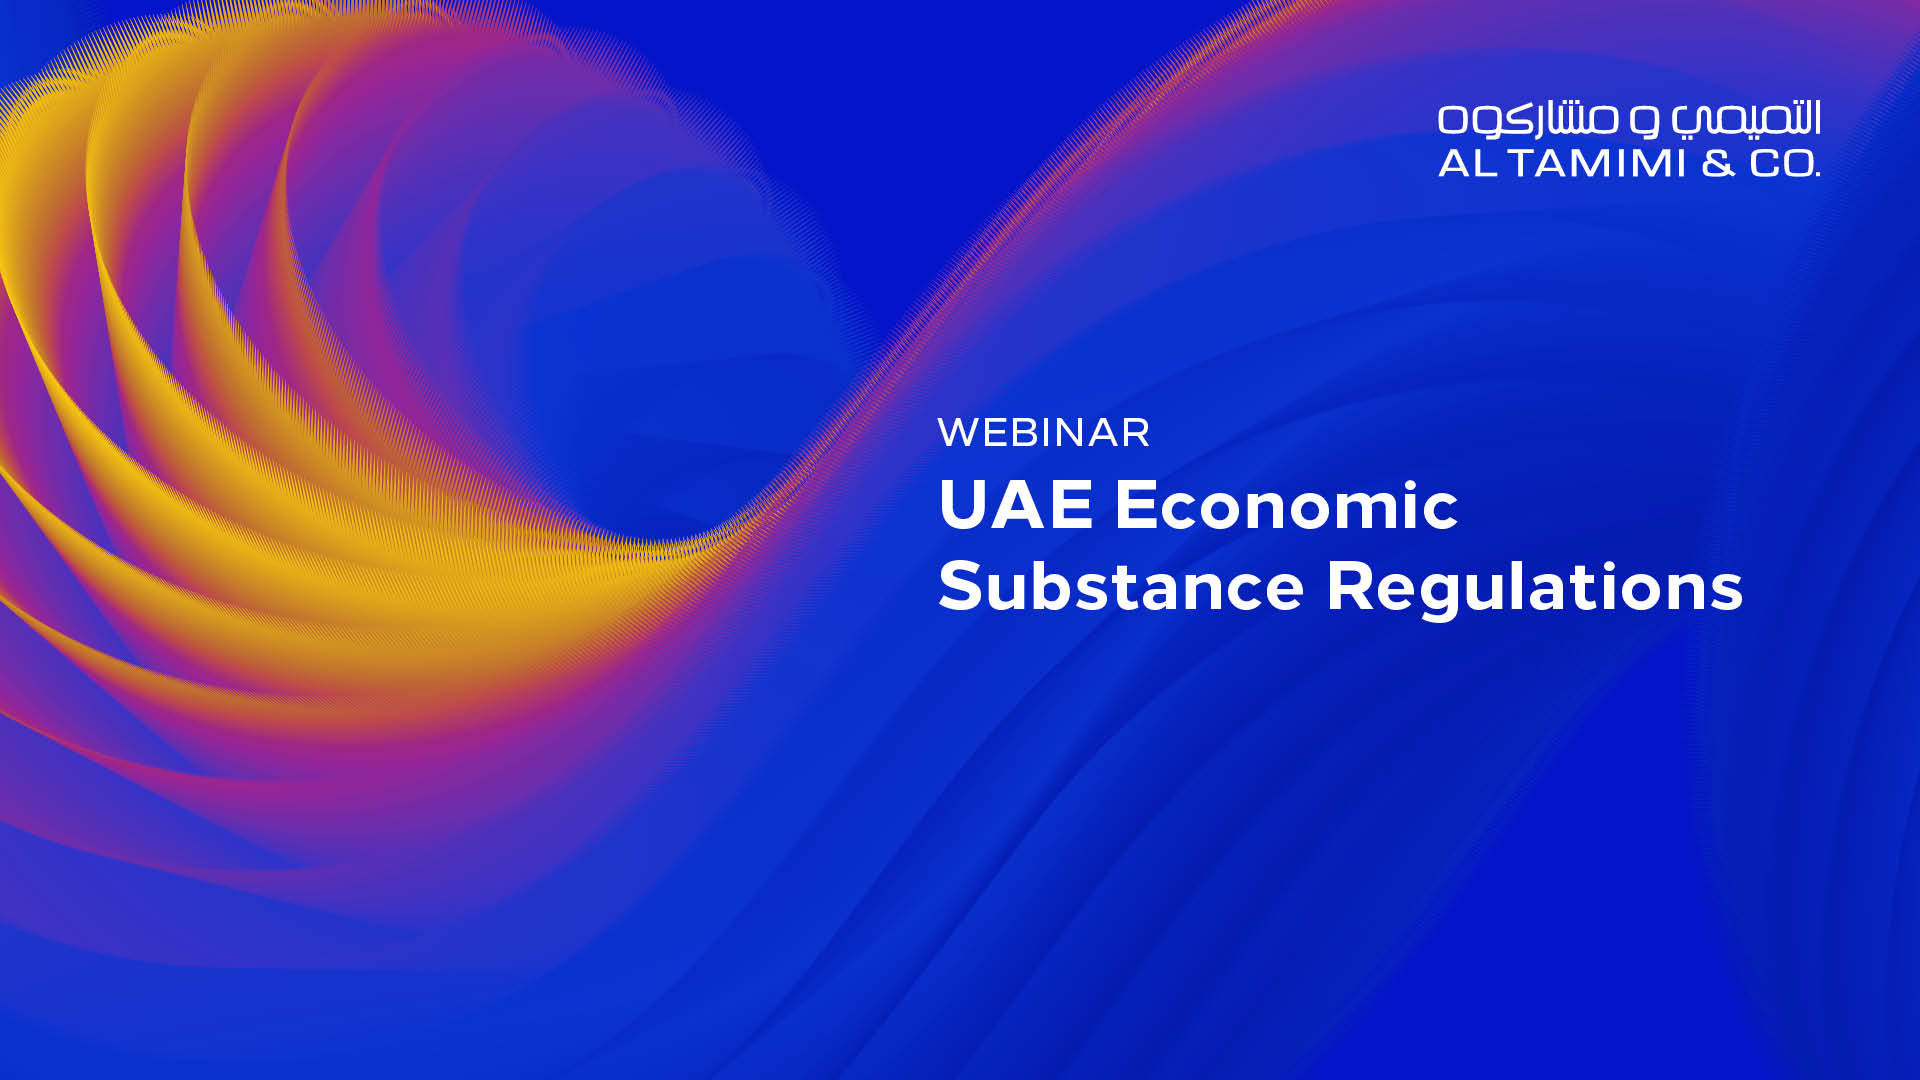 UAE Economic Substance Regulations